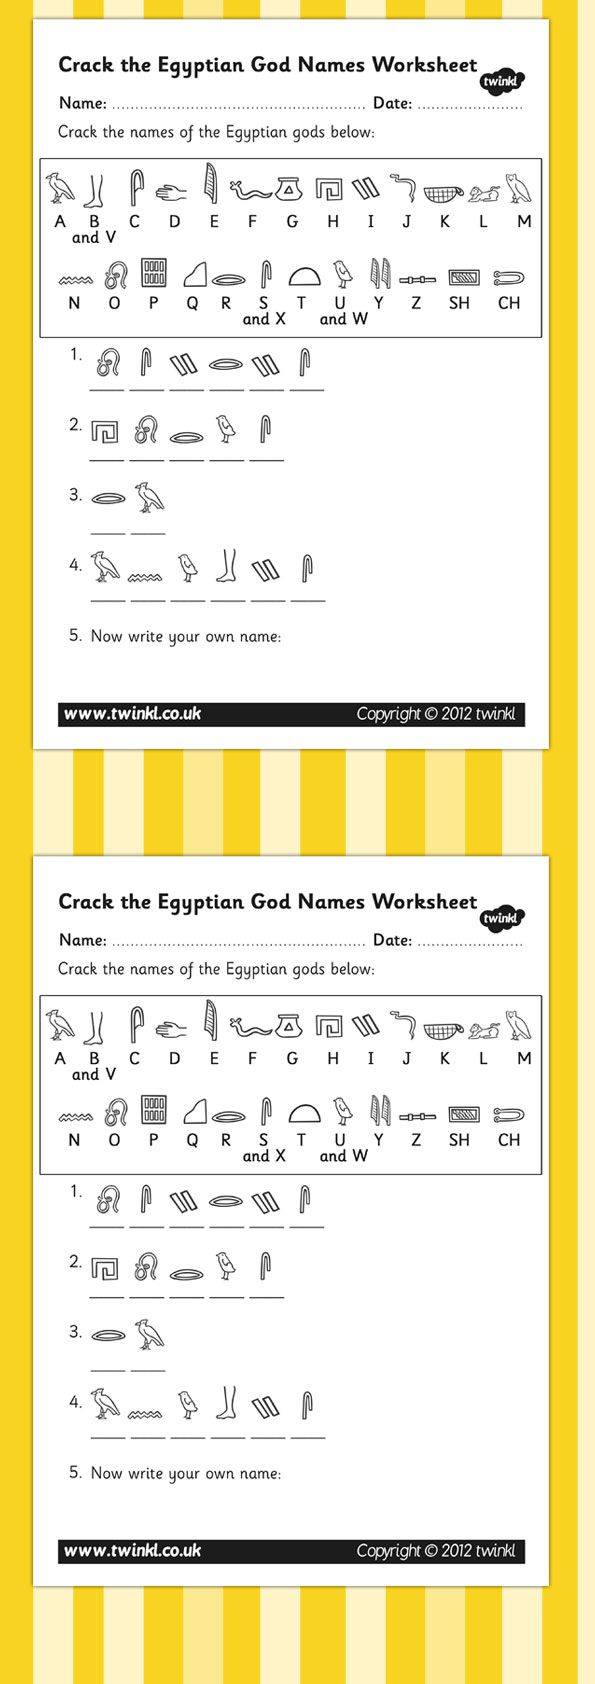 Worksheets Ancient Egypt Worksheets ks2 ancient egypt crack the hieroglyphs egyptian gods names worksheets